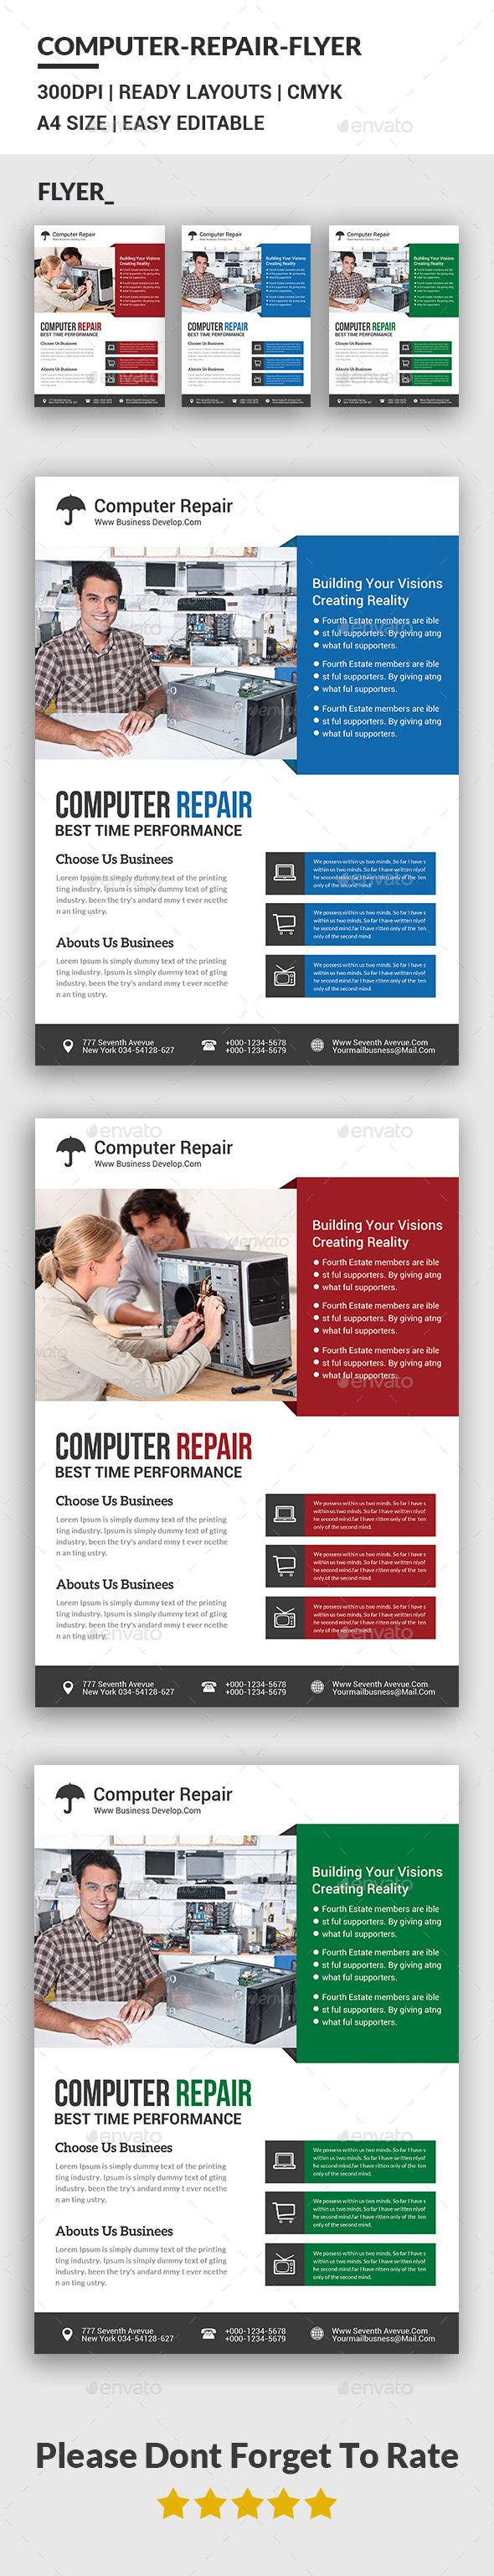 Computer Repair Flyer Template  Computer Repair Flyer Template